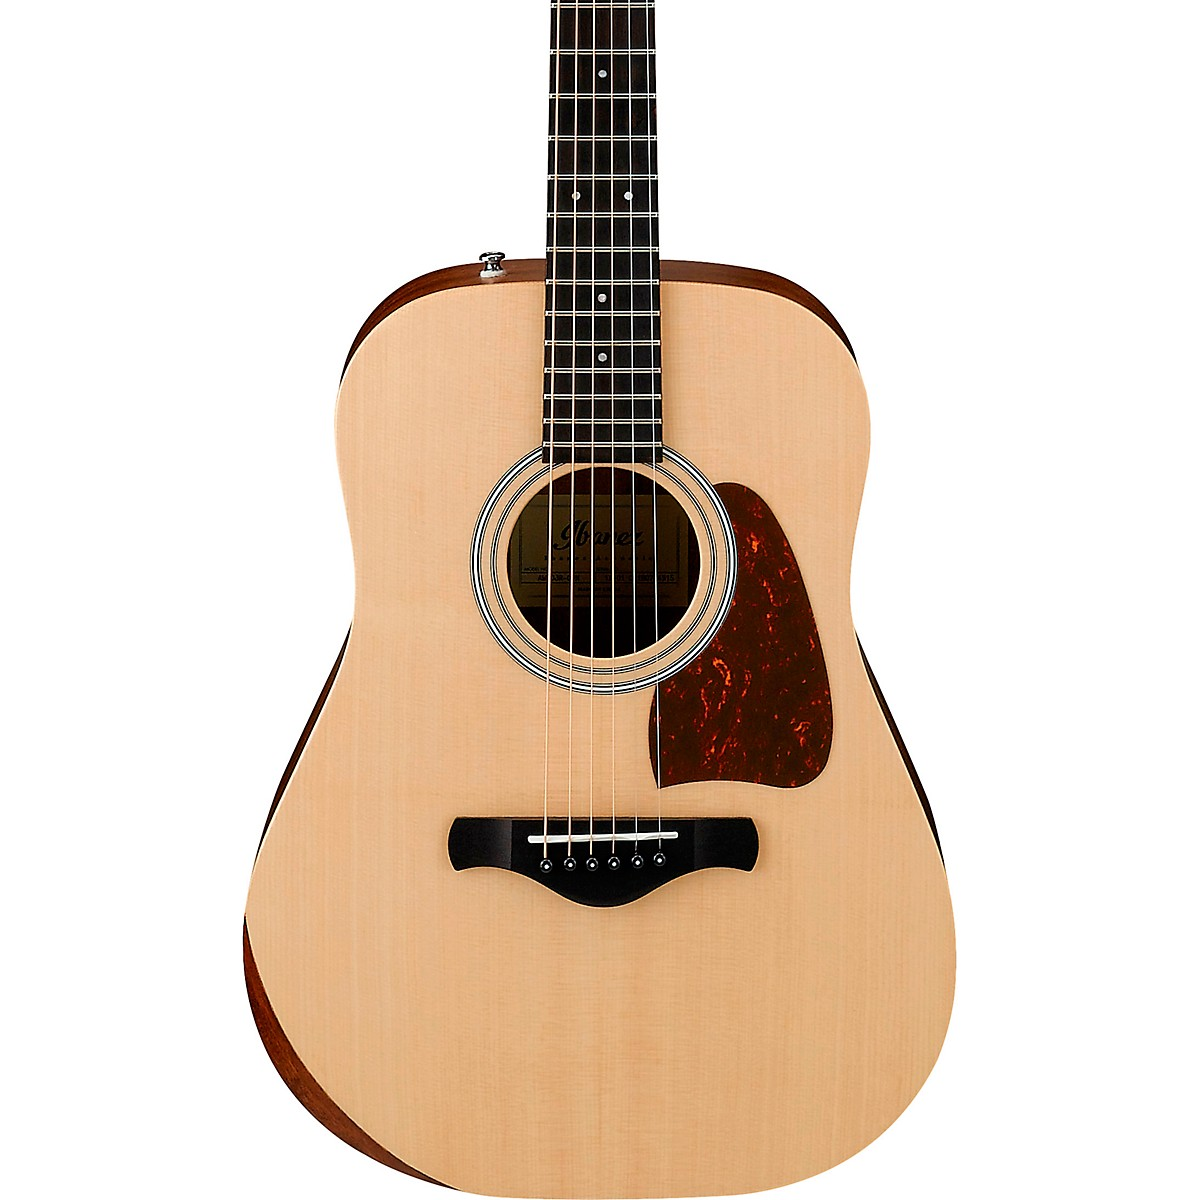 Ibanez AW50JR Artwood 3/4 Dreadnought Acoustic Guitar